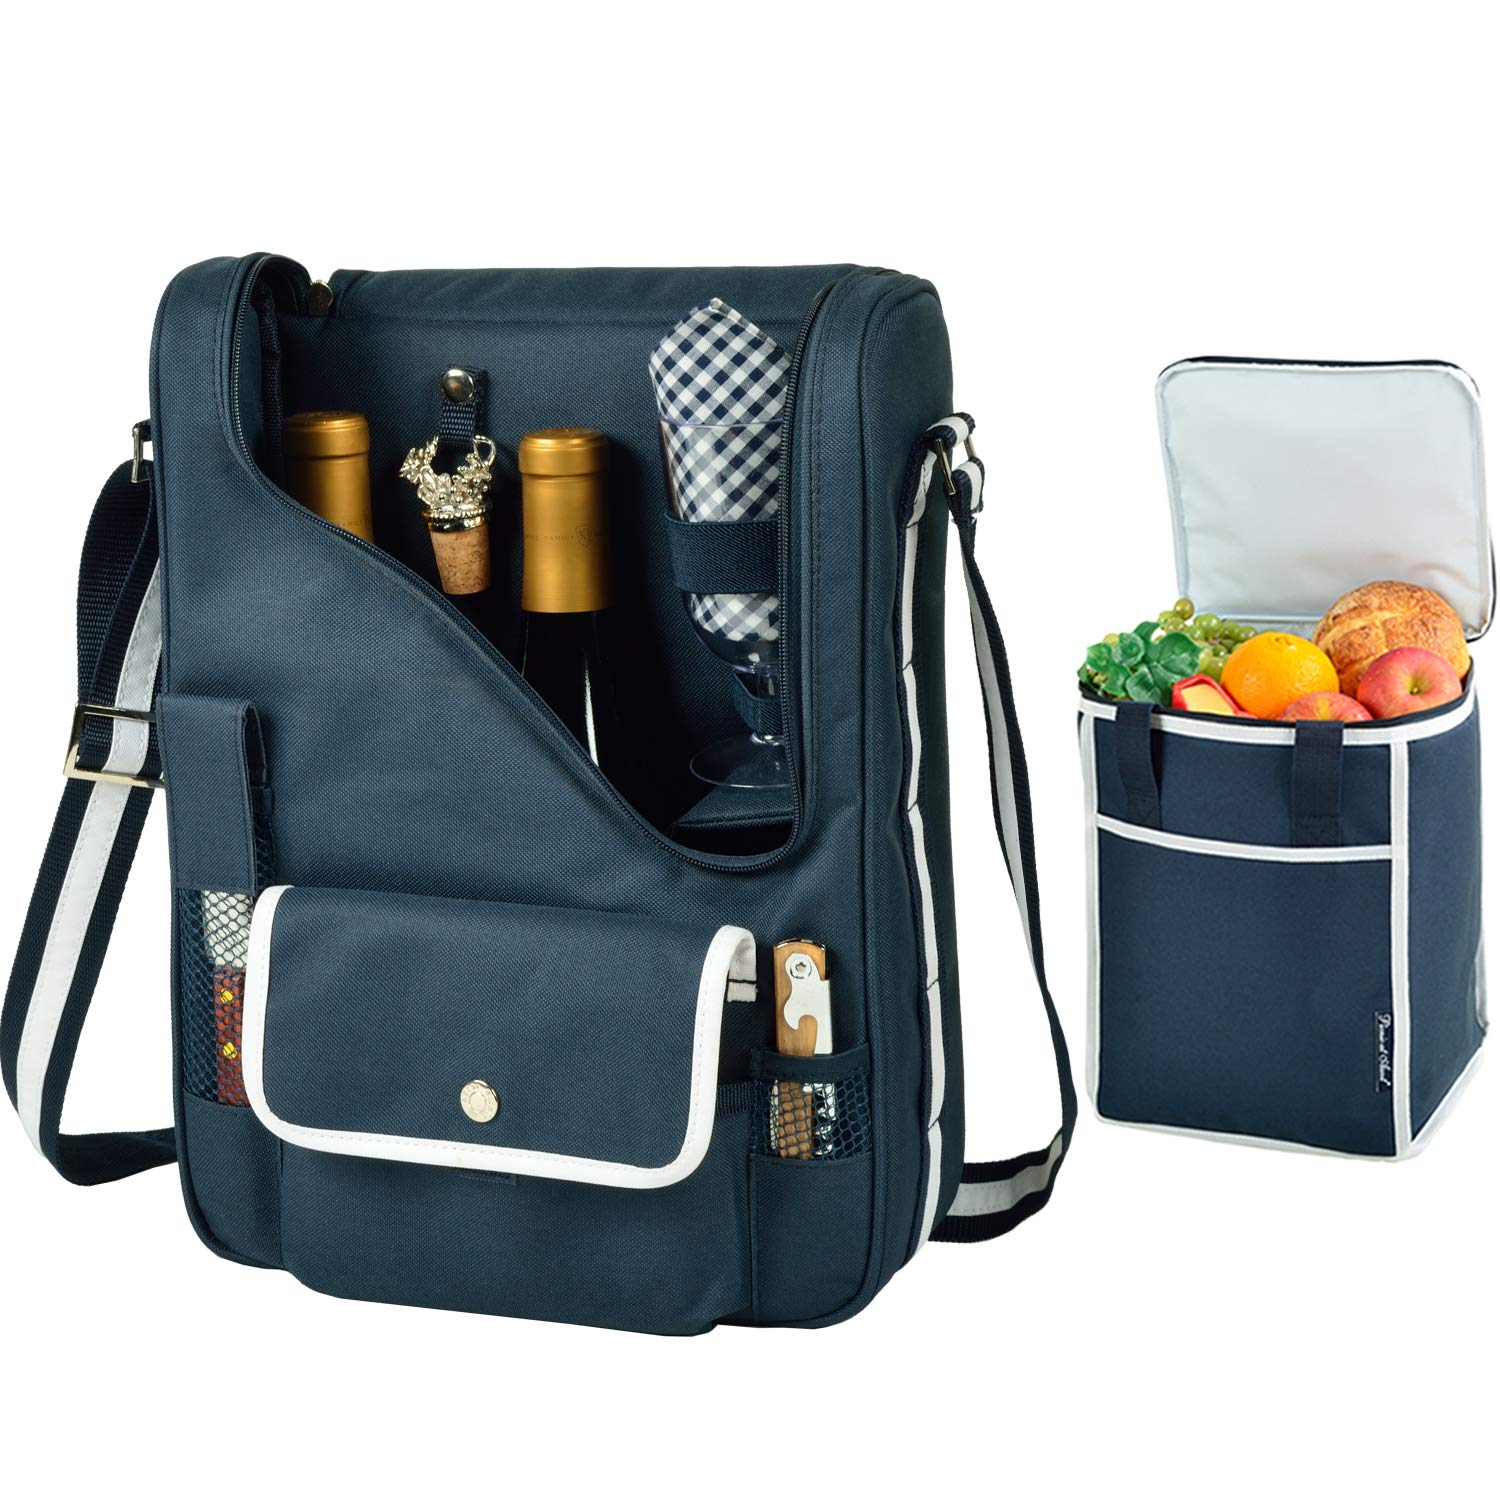 Picnic at Ascot Original Wine and Cheese Tote for 2 with Matching Cooler - Designed & Assembled in California - Navy by Picnic at Ascot